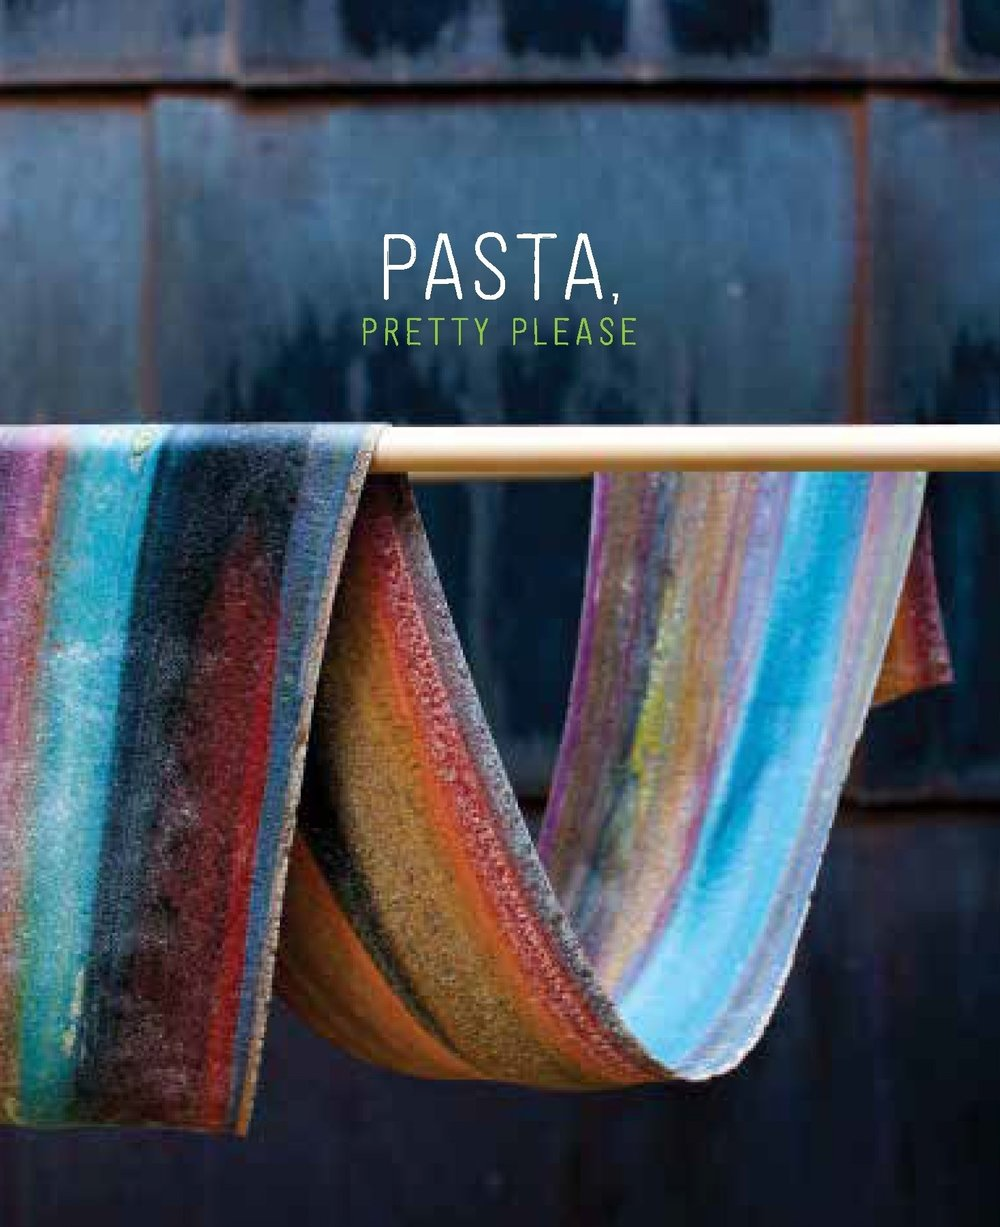 Pasta, Pretty Please_9780062674937_4P_0724_IP_Page_01.jpg